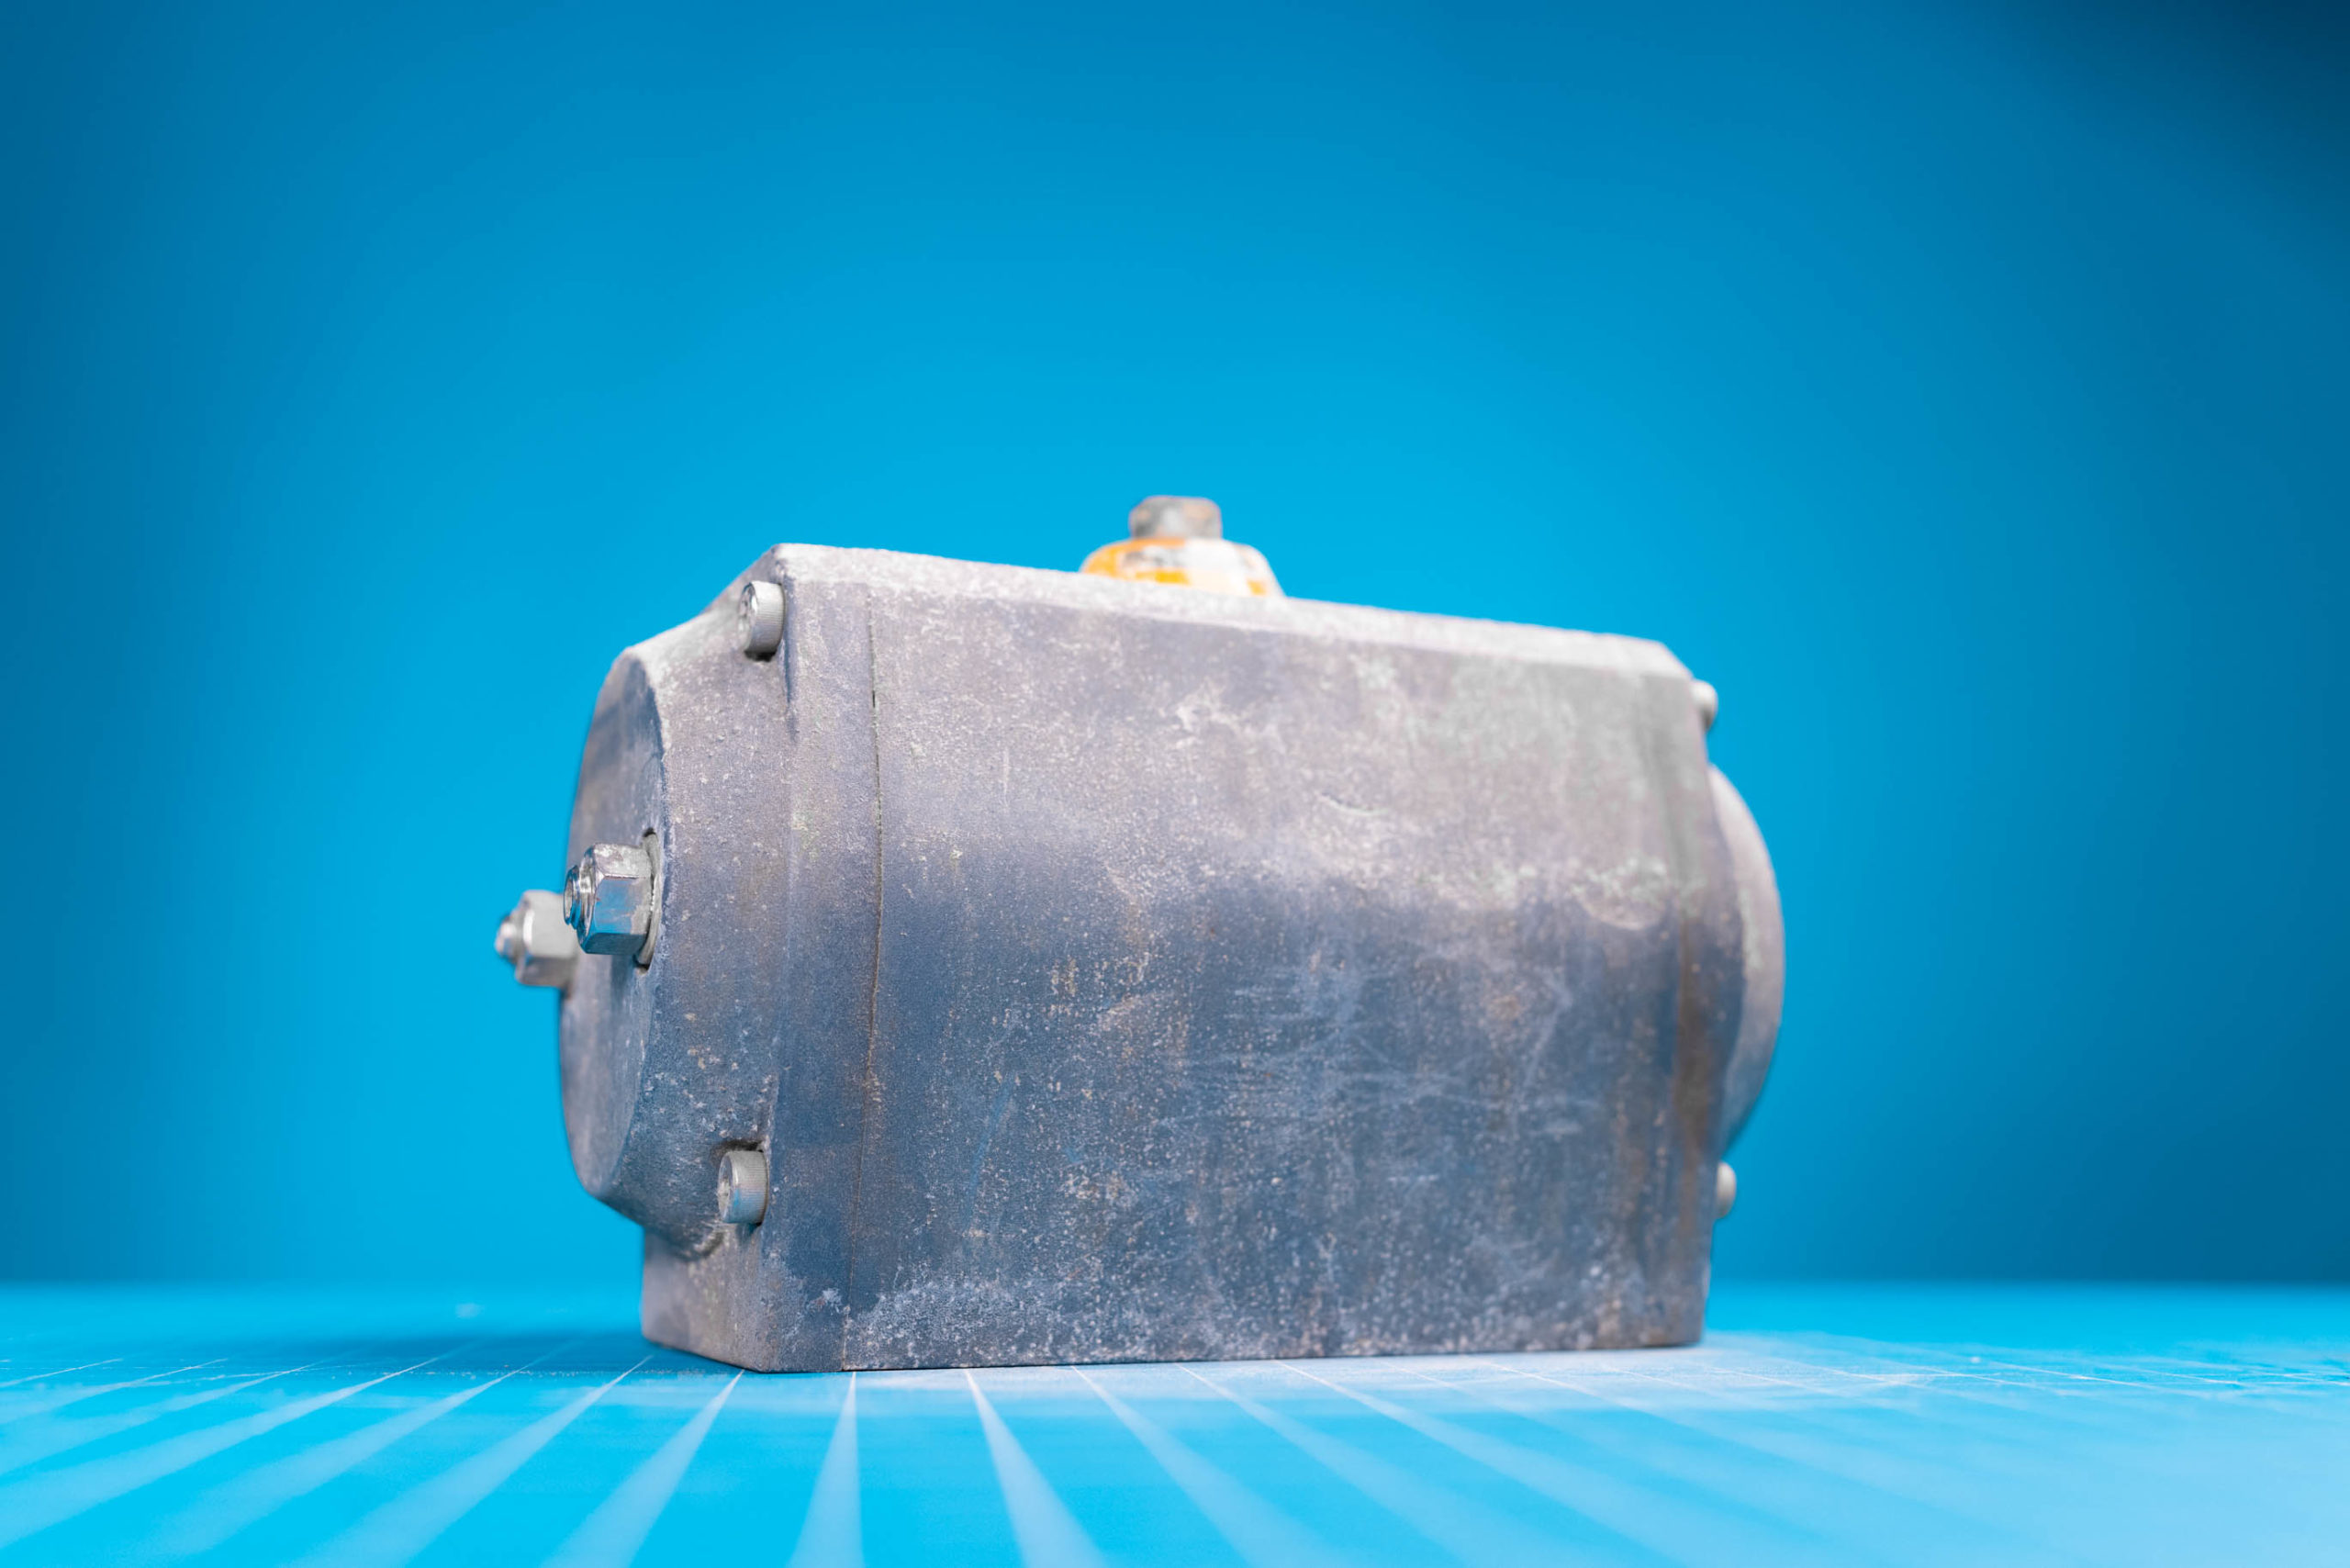 LockMesh® Coated Actuator After 2 Years of Service